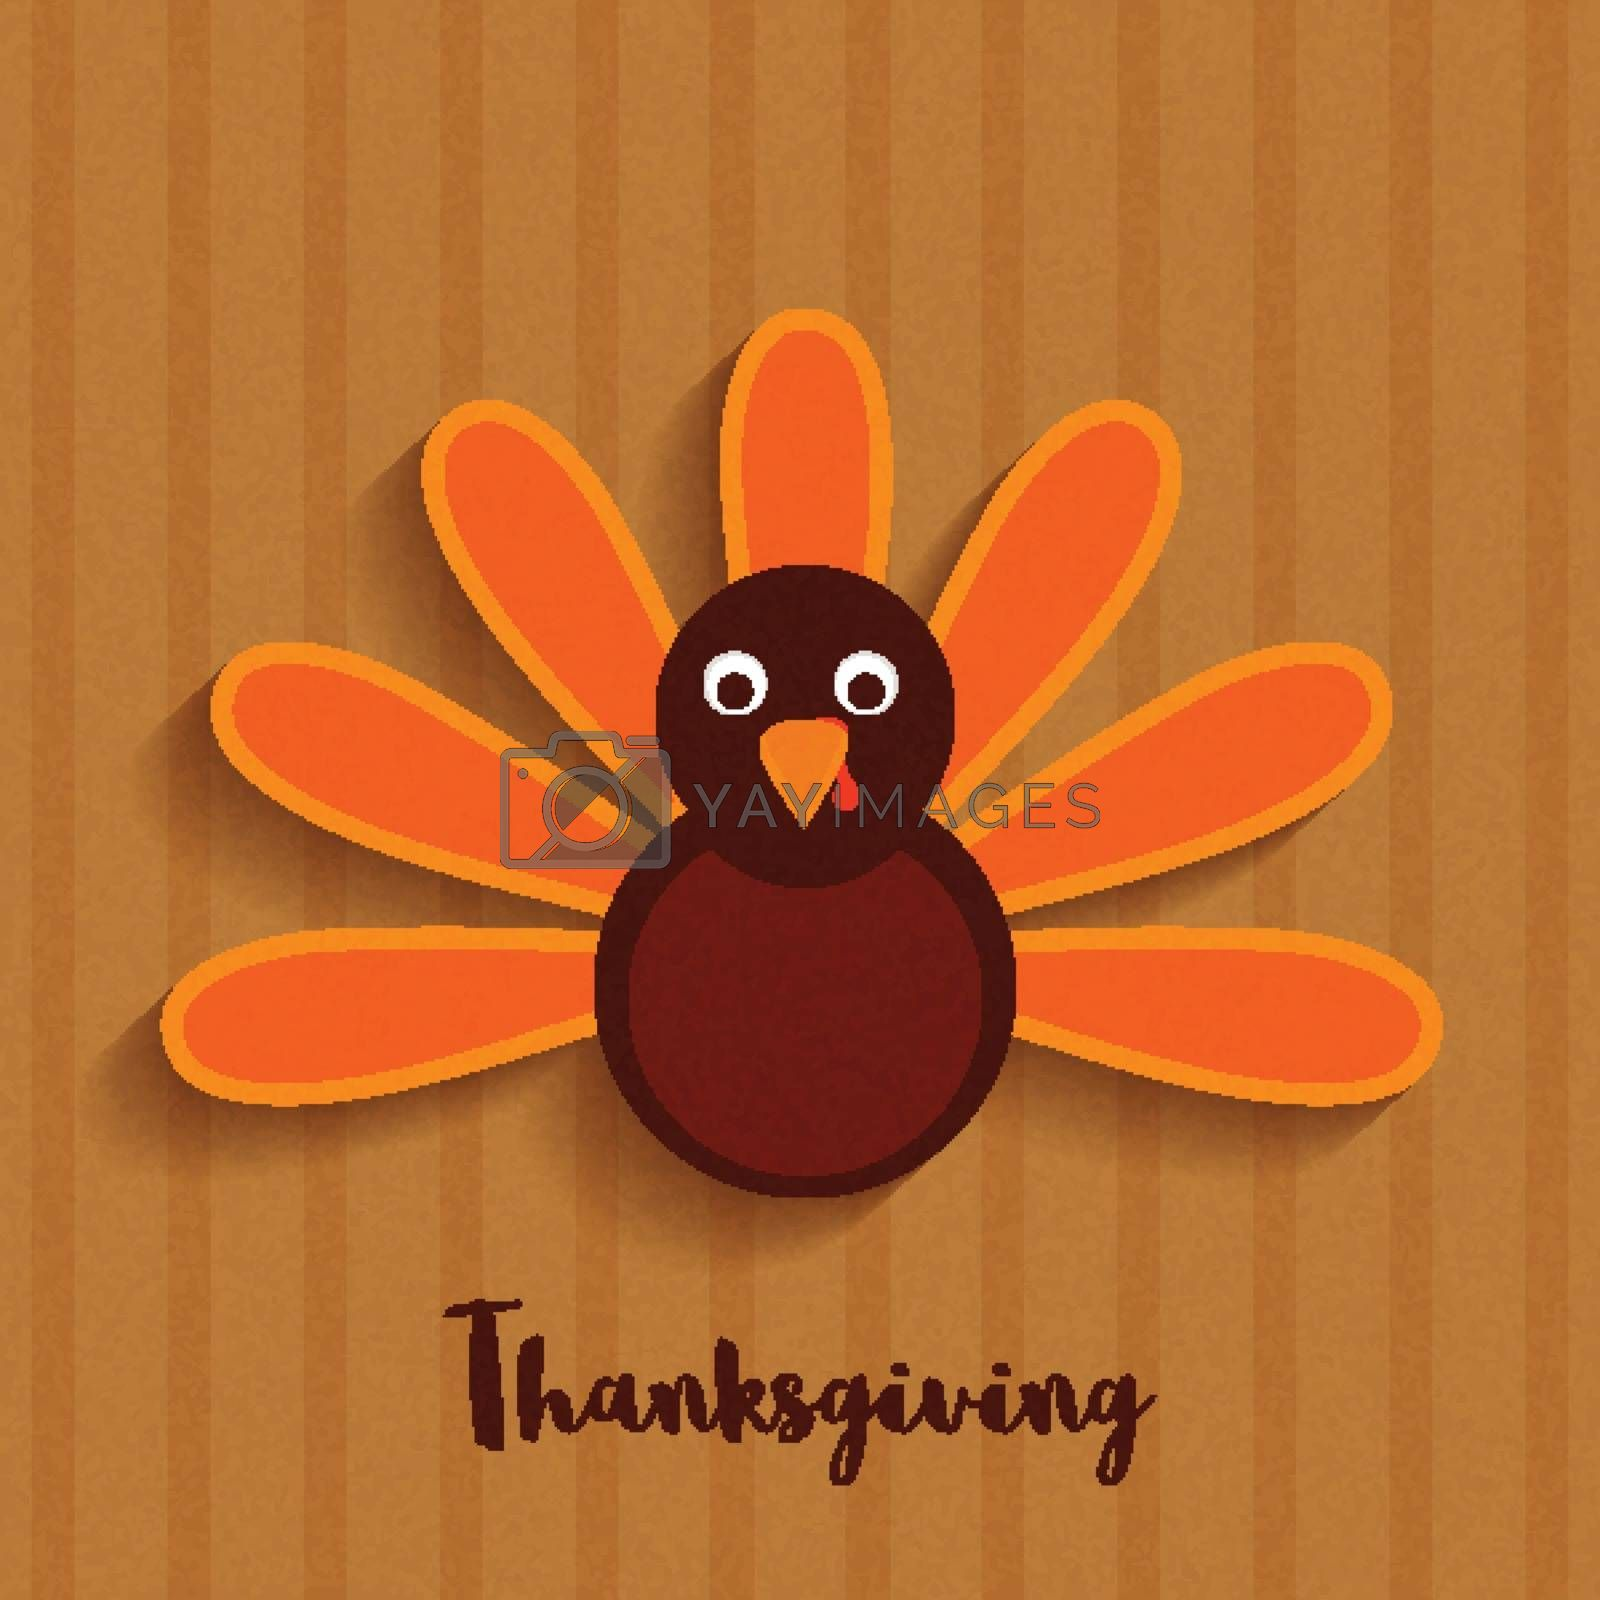 Cute Turkey Bird on brown background for Happy Thanksgiving Day celebration.